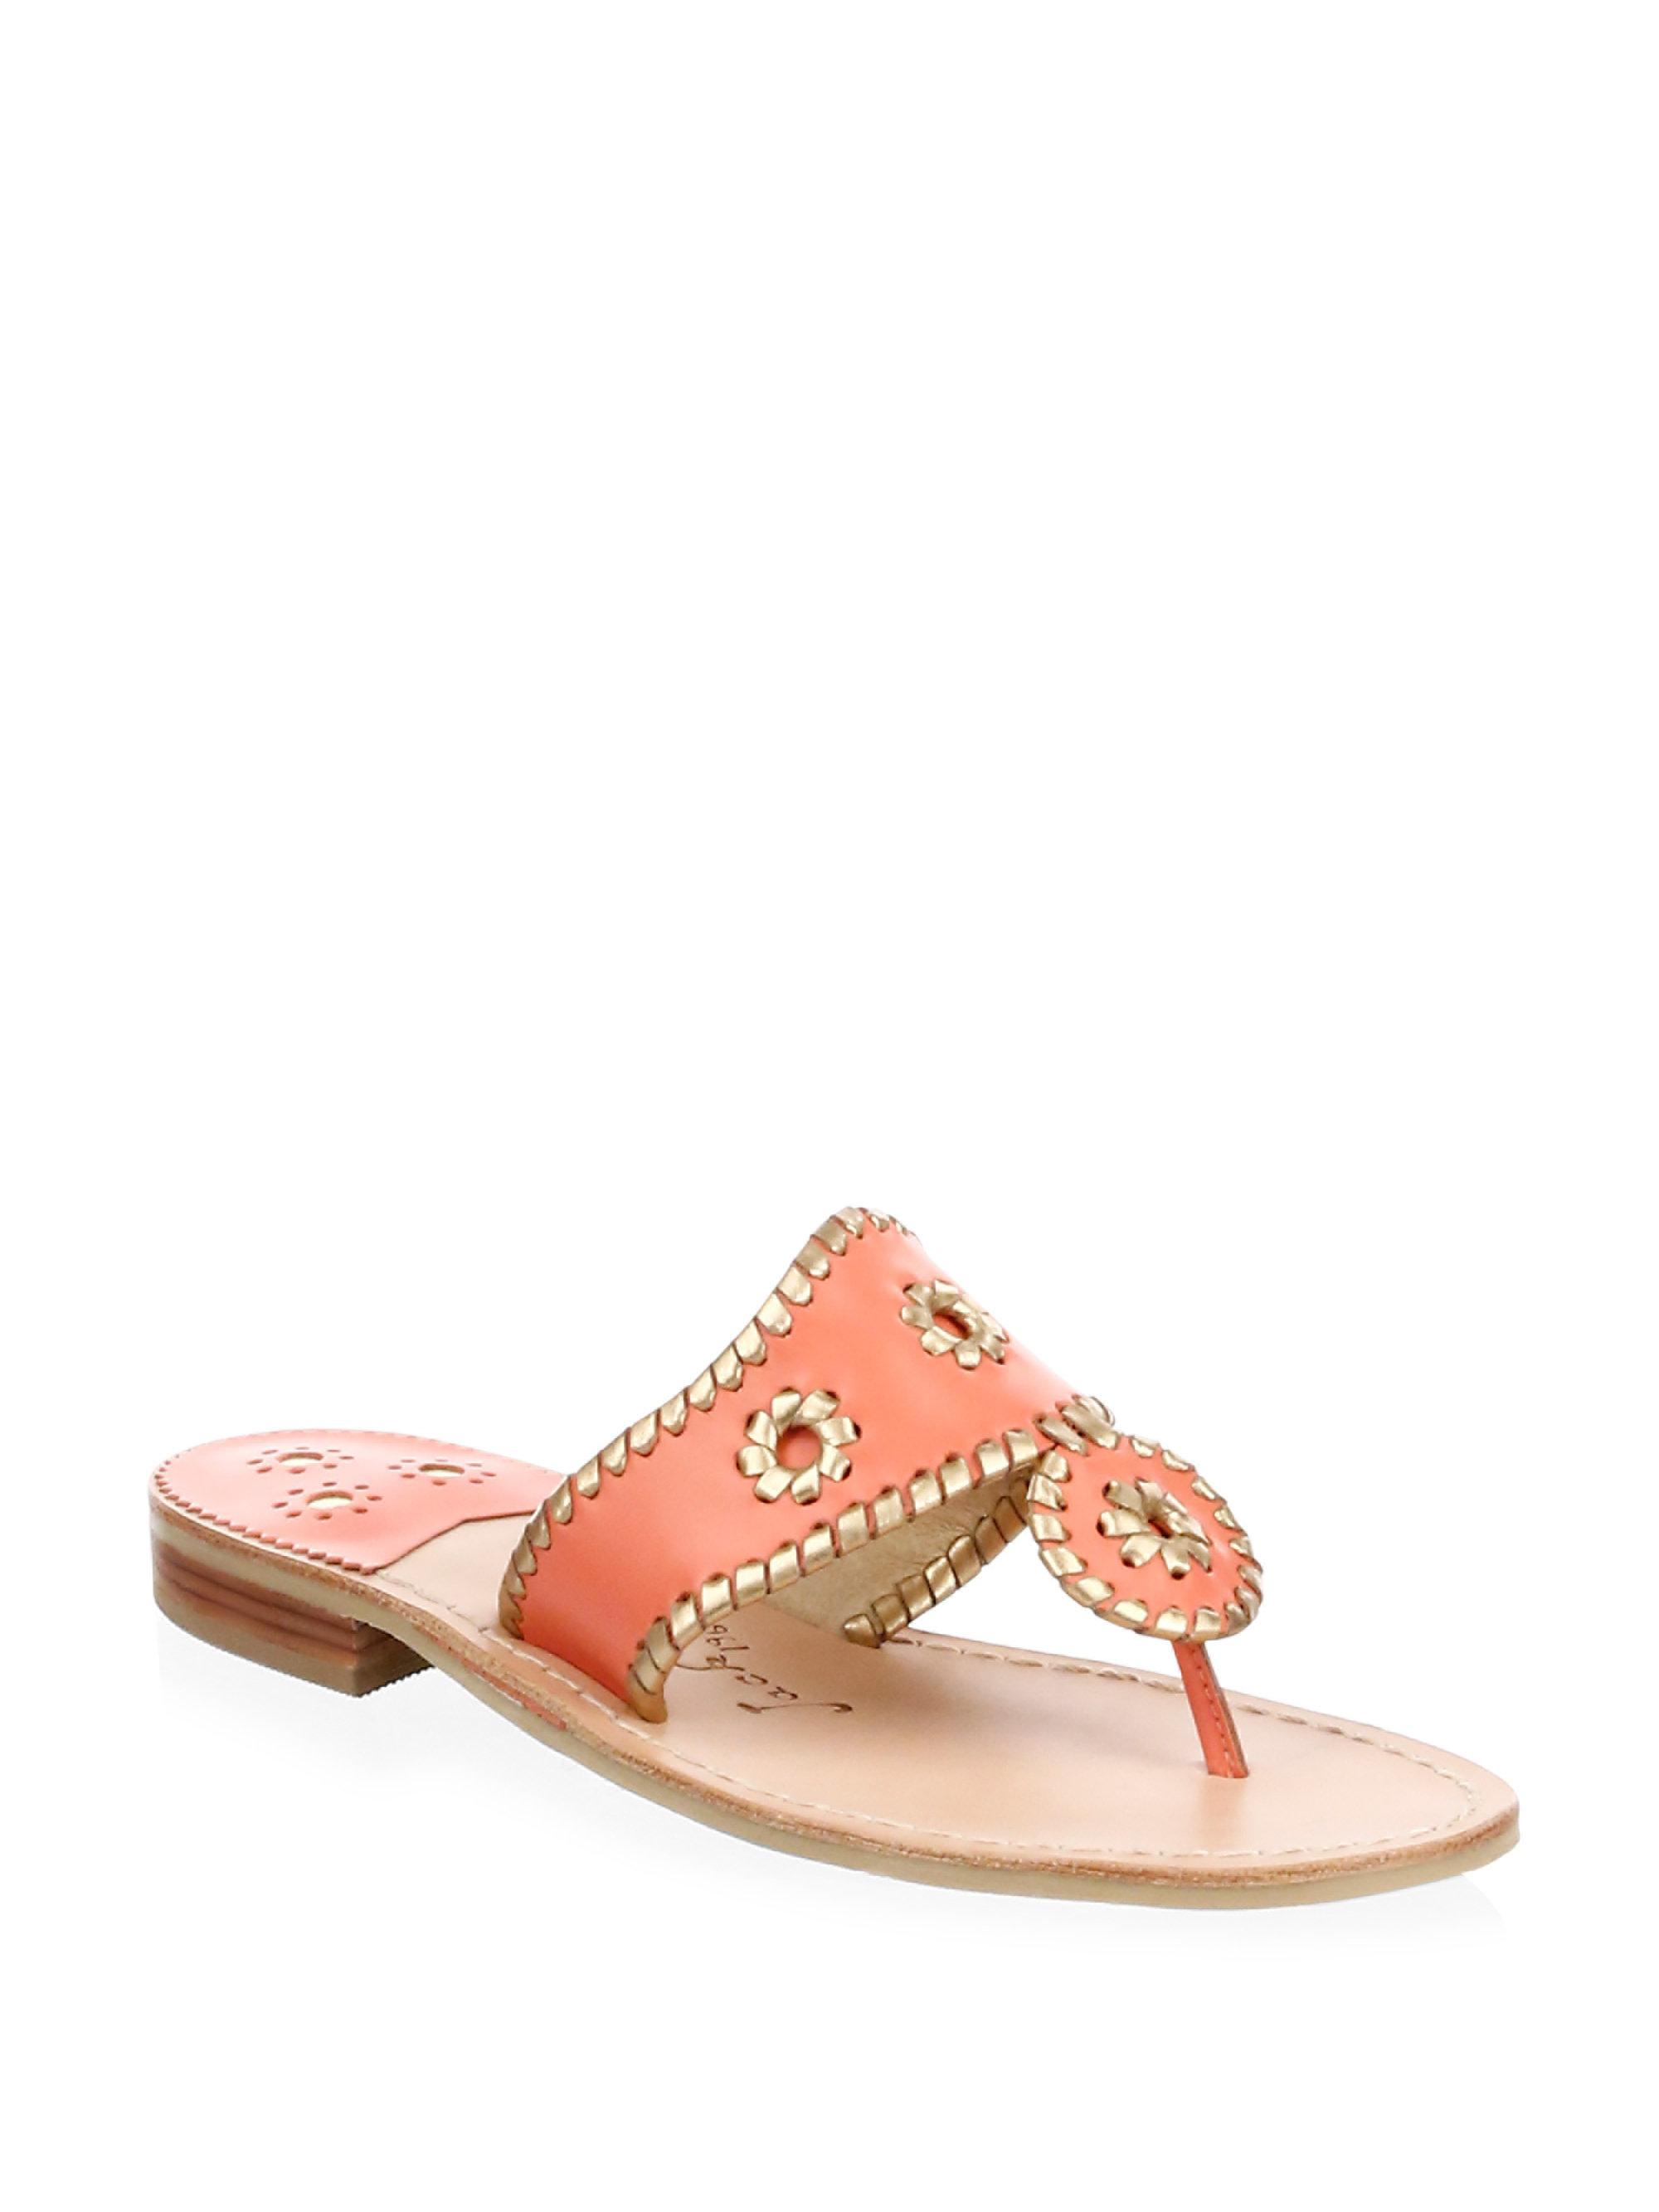 e49b165cde3e Lyst - Jack Rogers Hollis Leather Thong Sandals in Pink